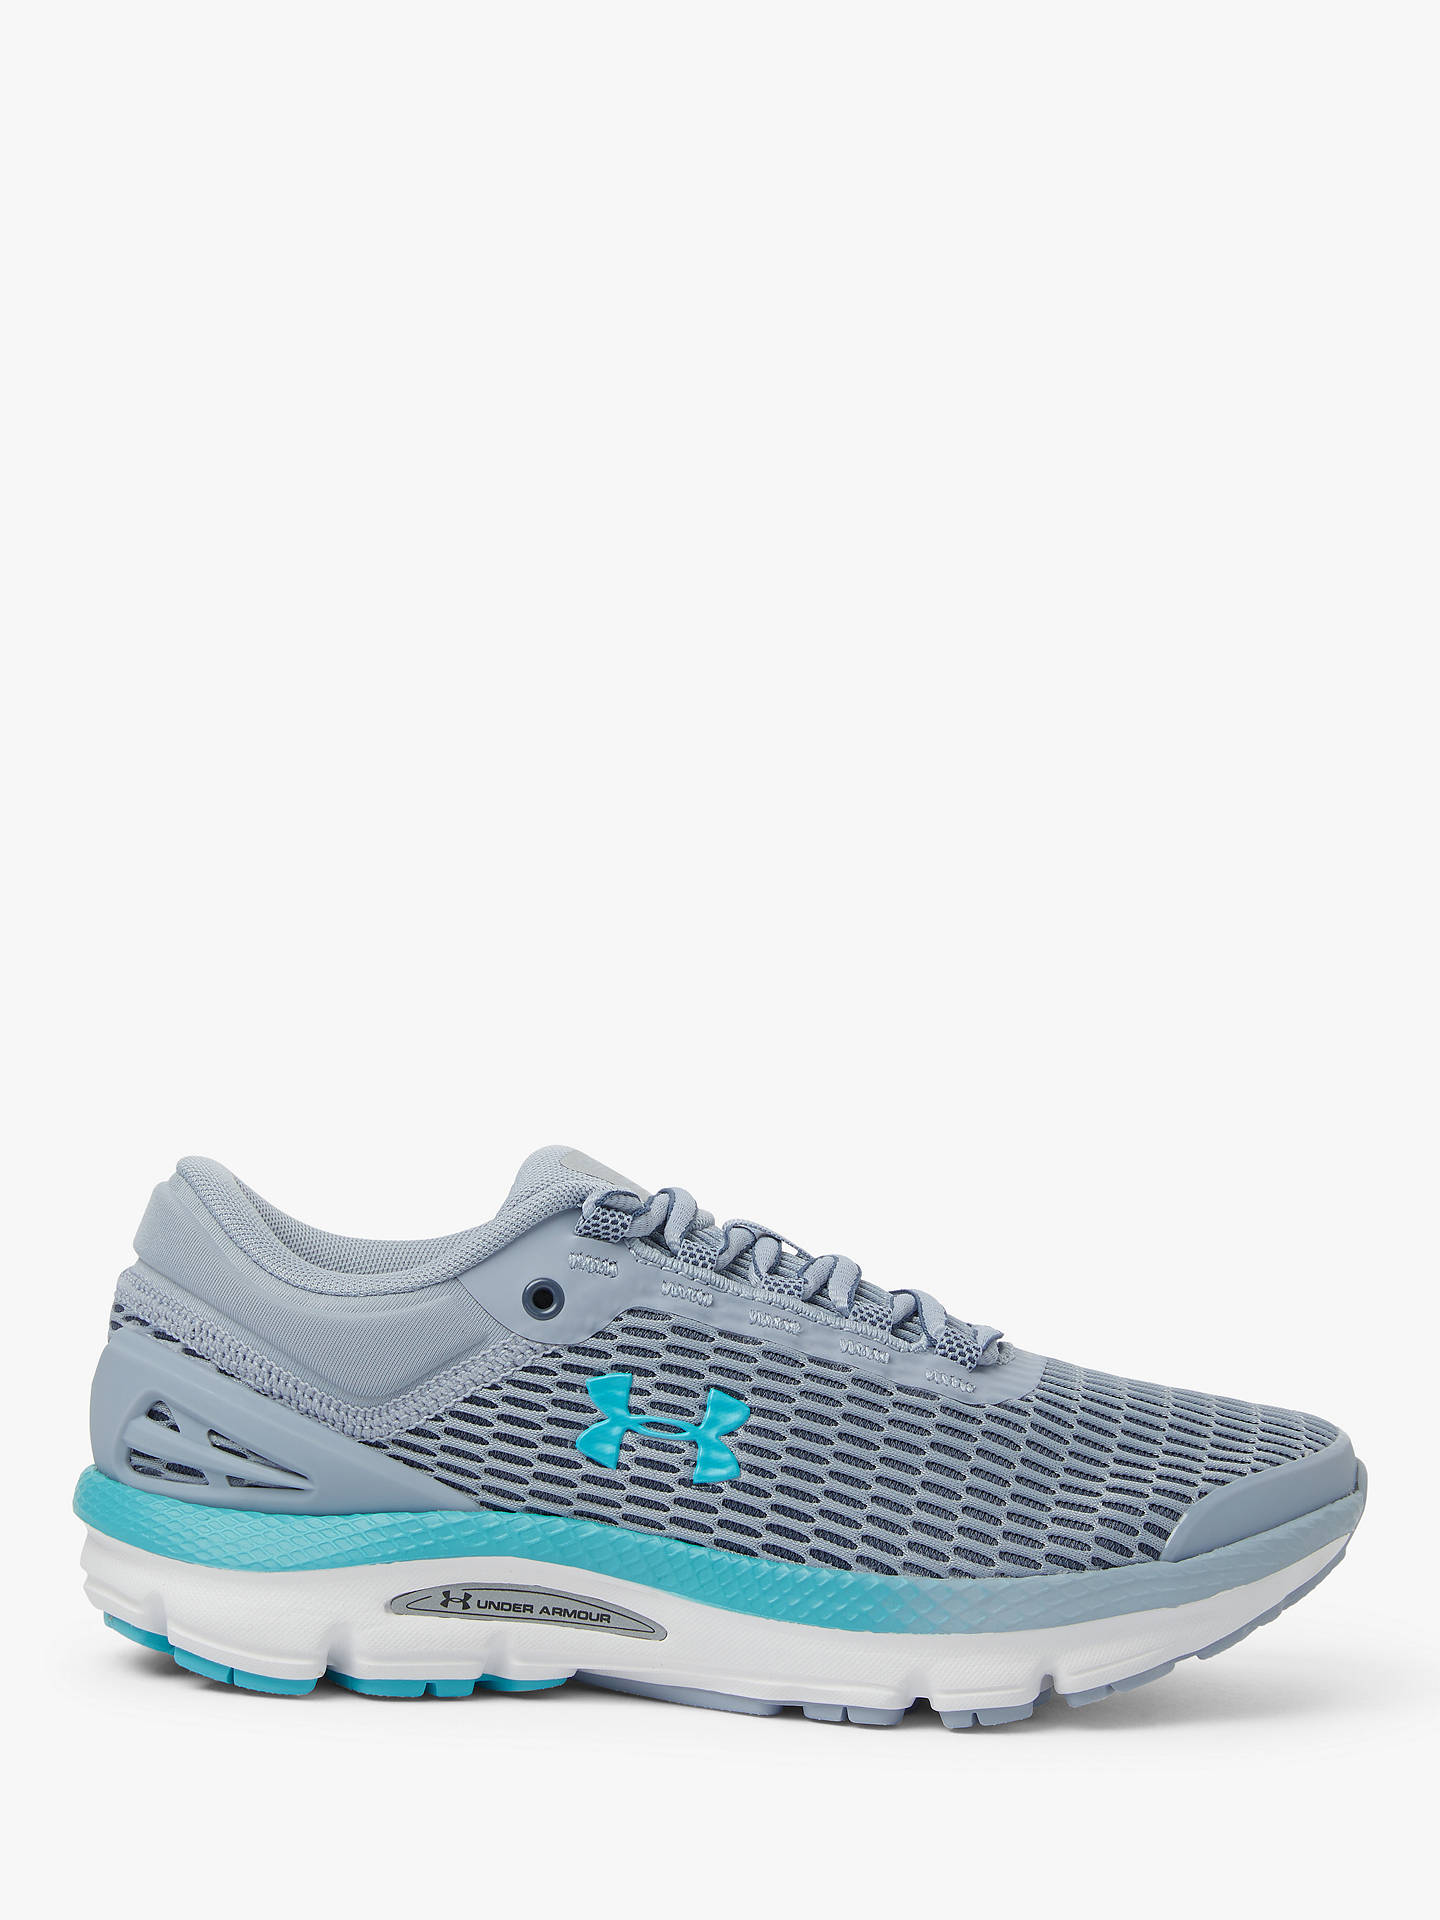 0cb6f48e14 Under Armour Charged Intake 3 Women's Running Shoes, Downpour Grey/Blue